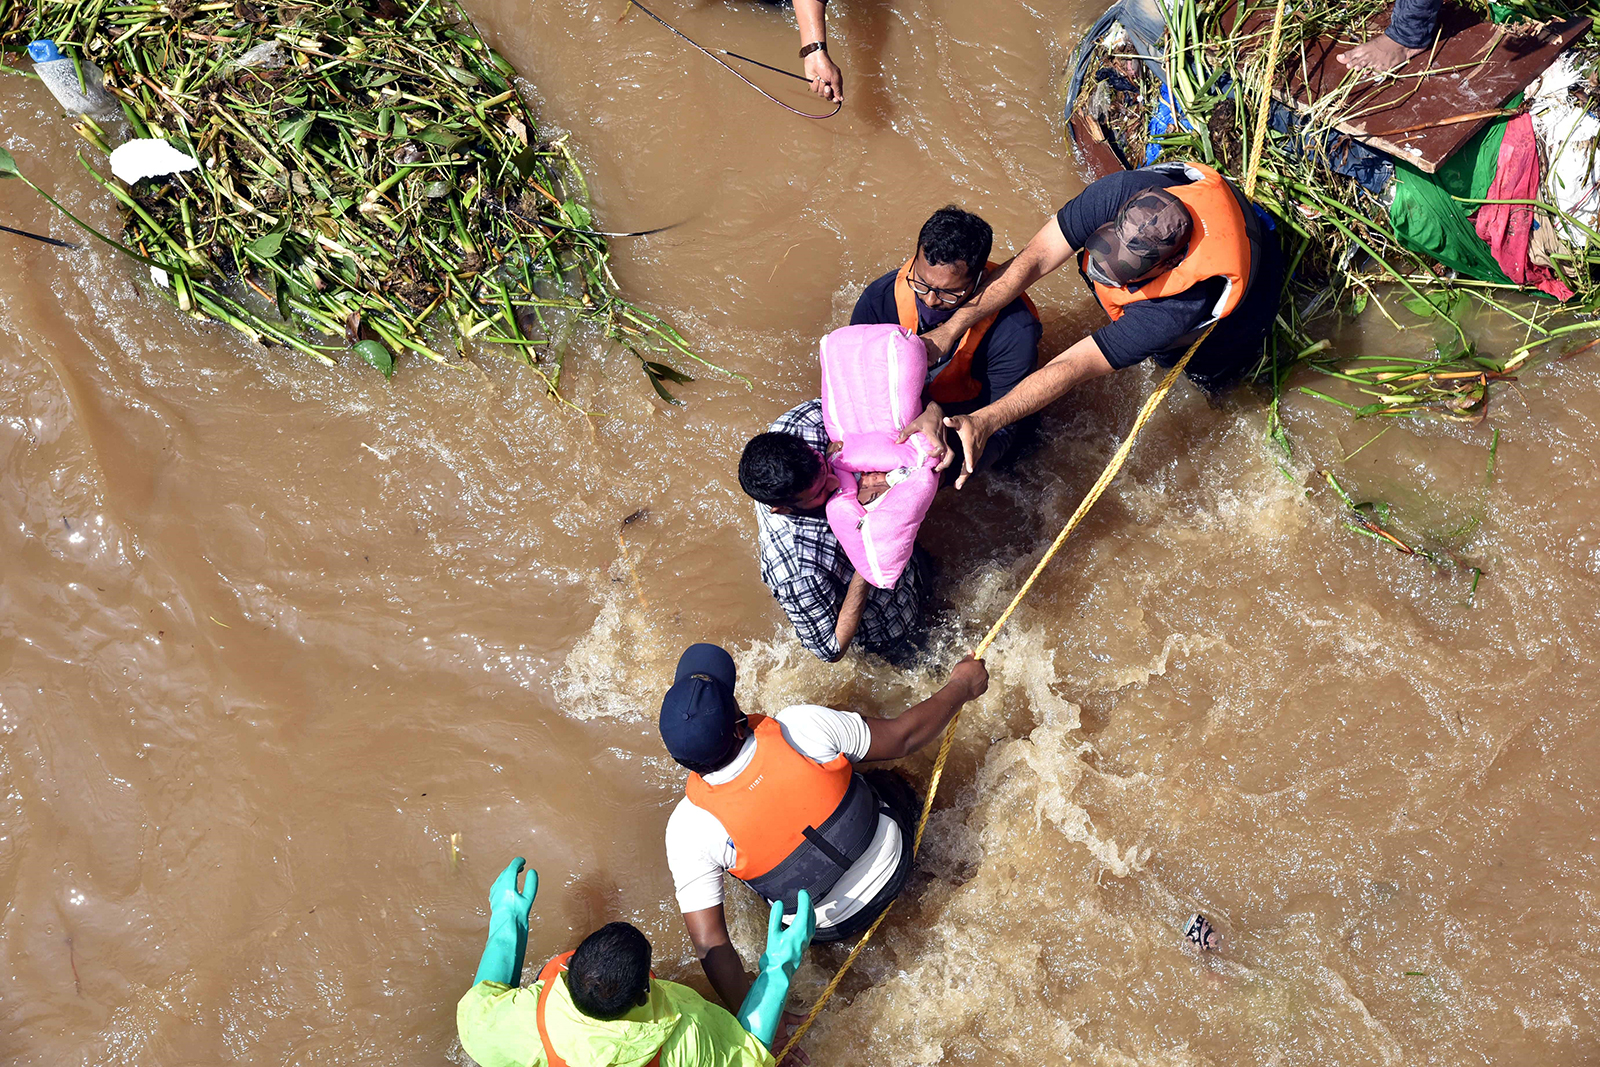 National Disaster Response Force personnel rescue a baby and her family from a waterlogged house at Hafiz Baba Nagar at Hyderabad in India's southern state of Telangana, on October 18.